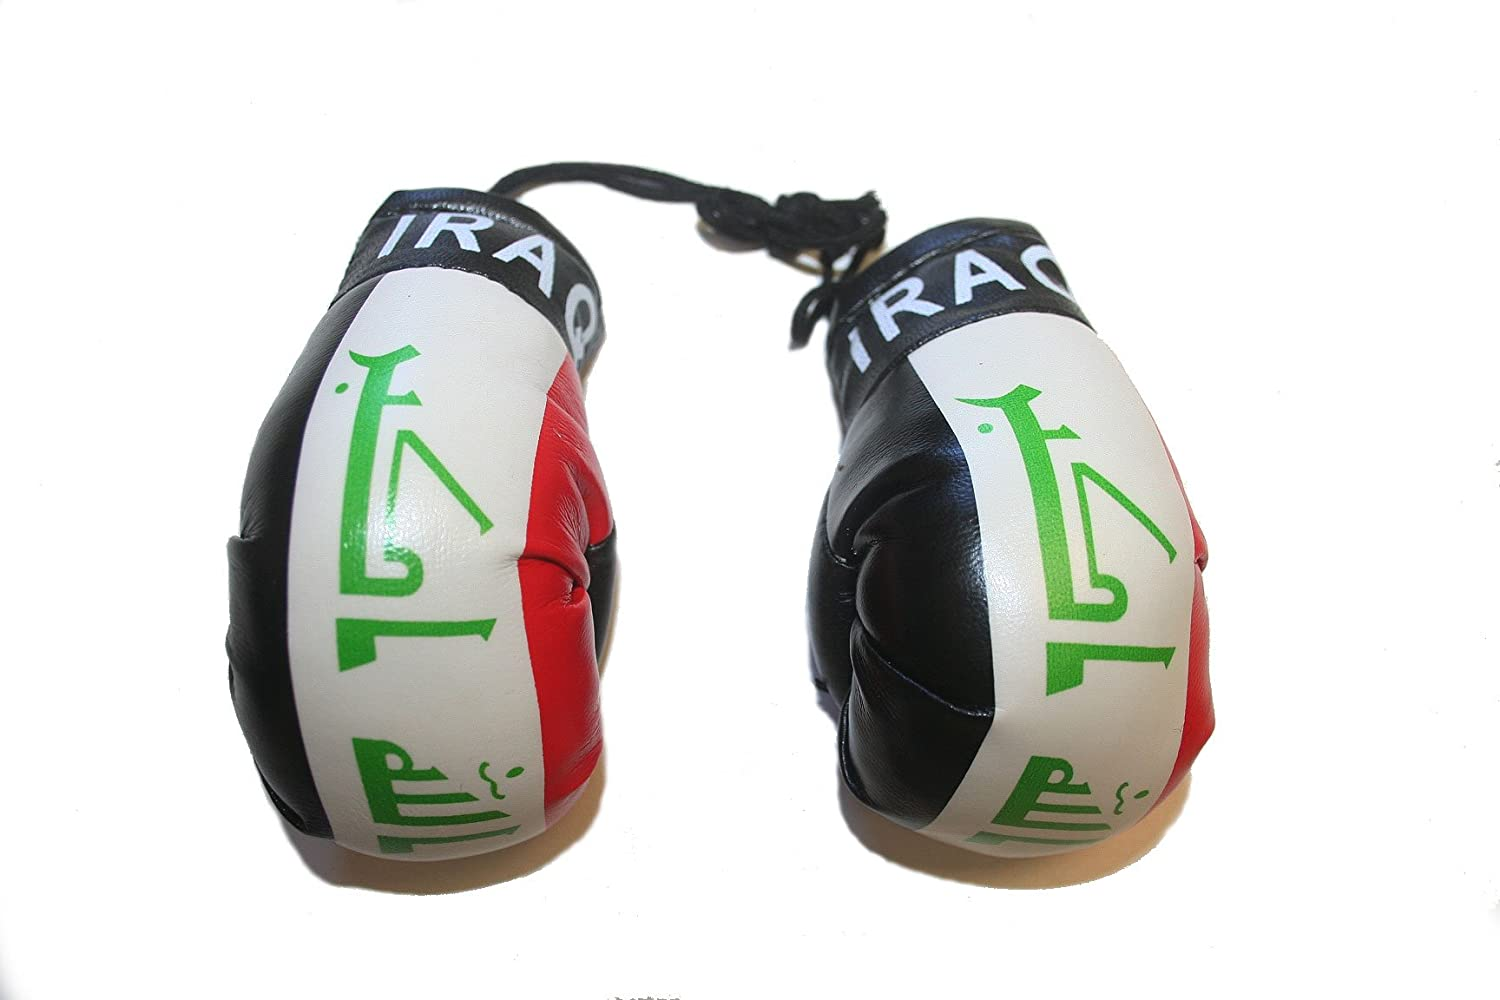 Iraq Mini Boxing Gloves to Hang Over Your Automobile Mirror ... New SUPERDAVES SUPERSTORE